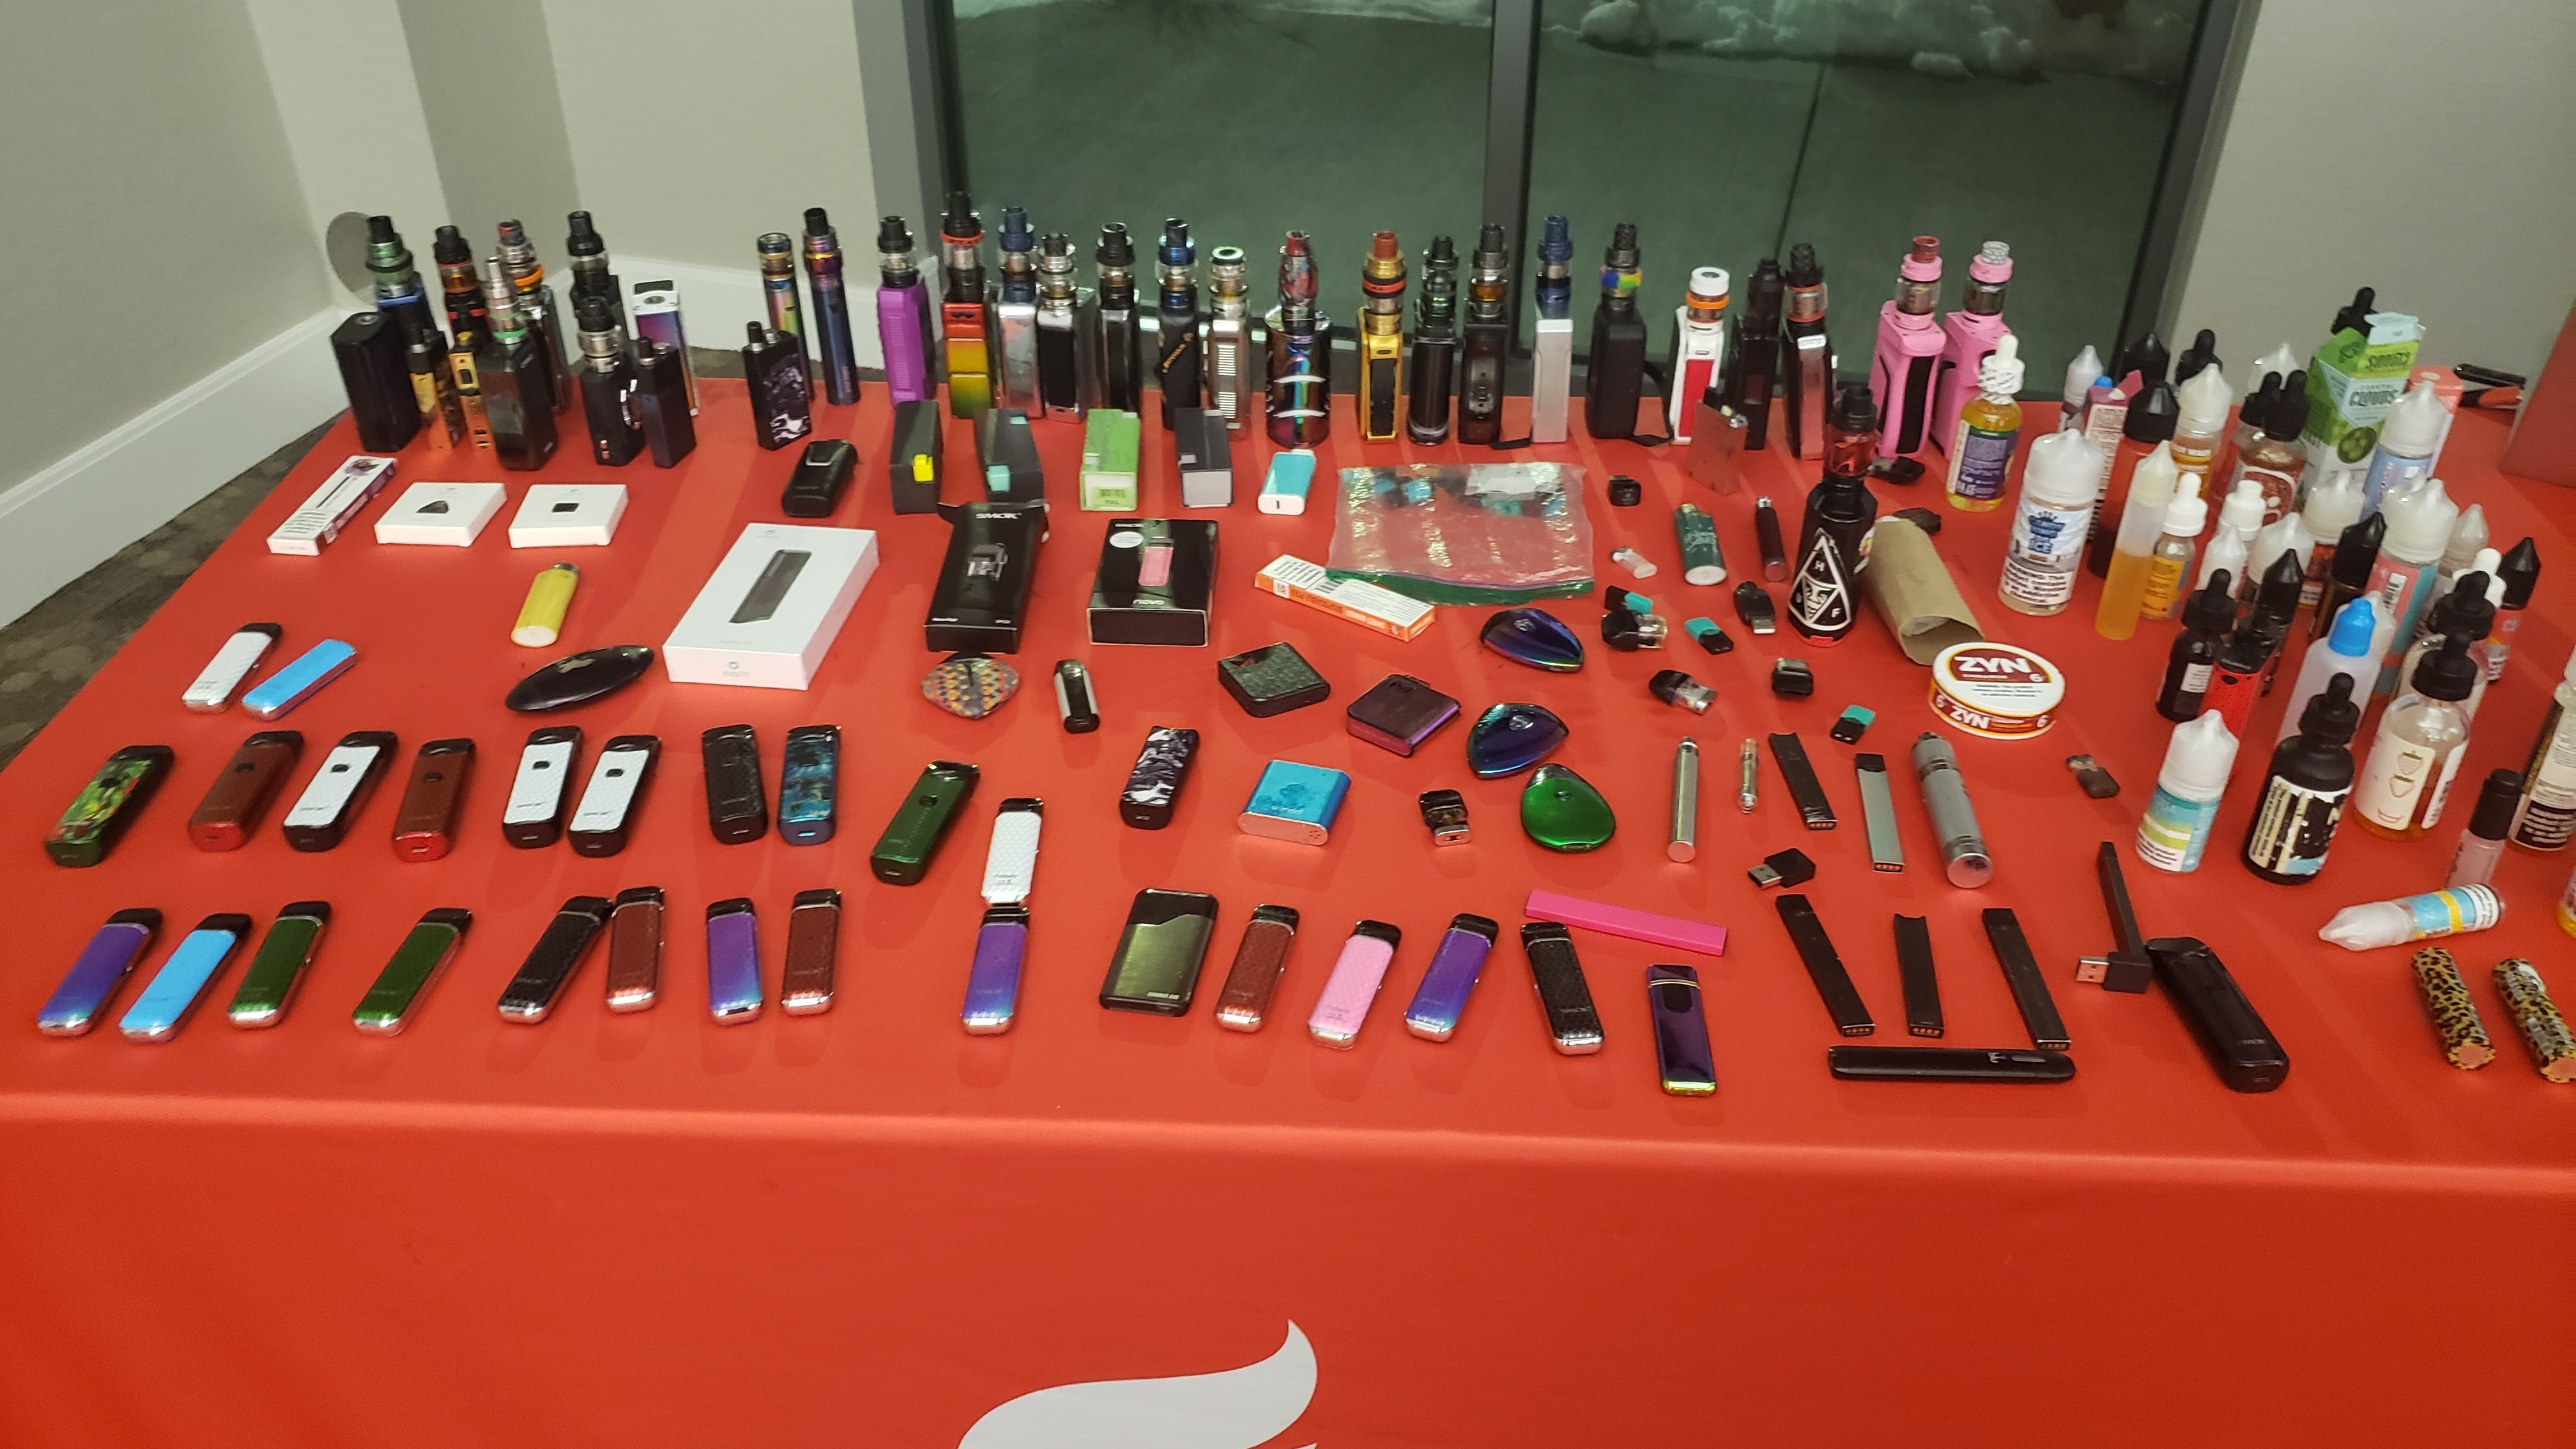 A table with a number of e-cigarette devices laid out to look at.